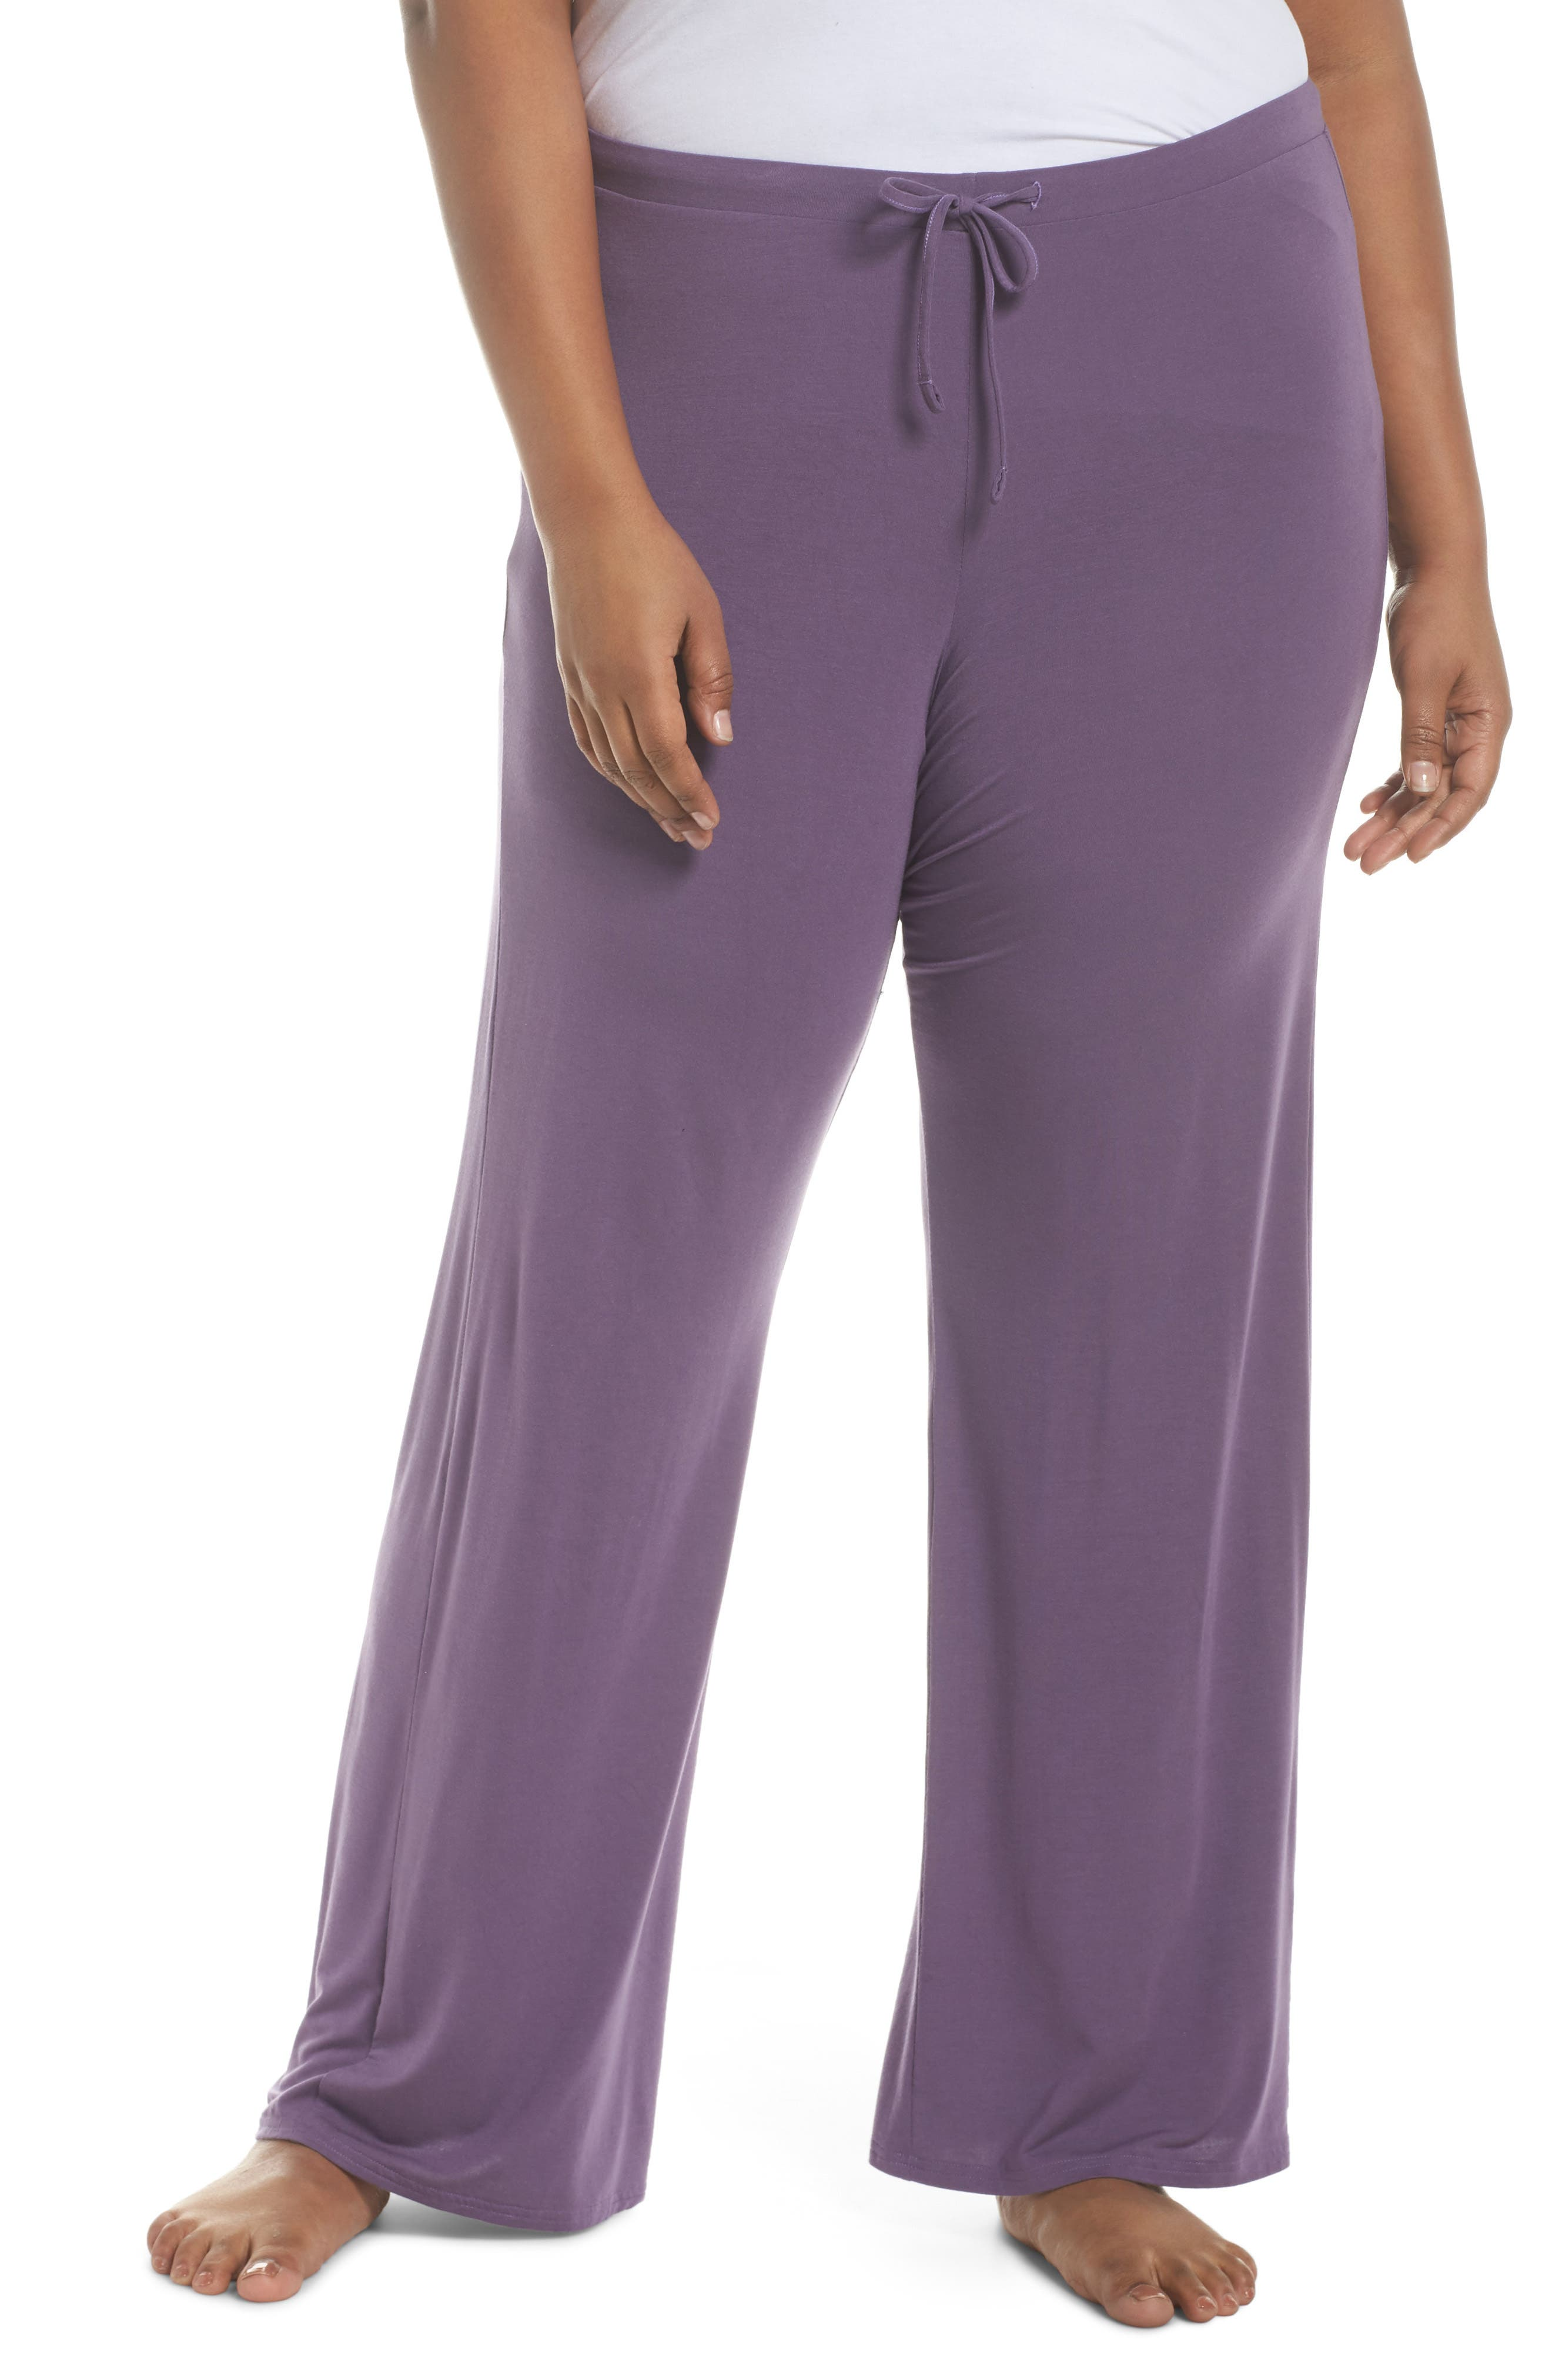 Breathe Lounge Pants,                         Main,                         color, Purple Mulled